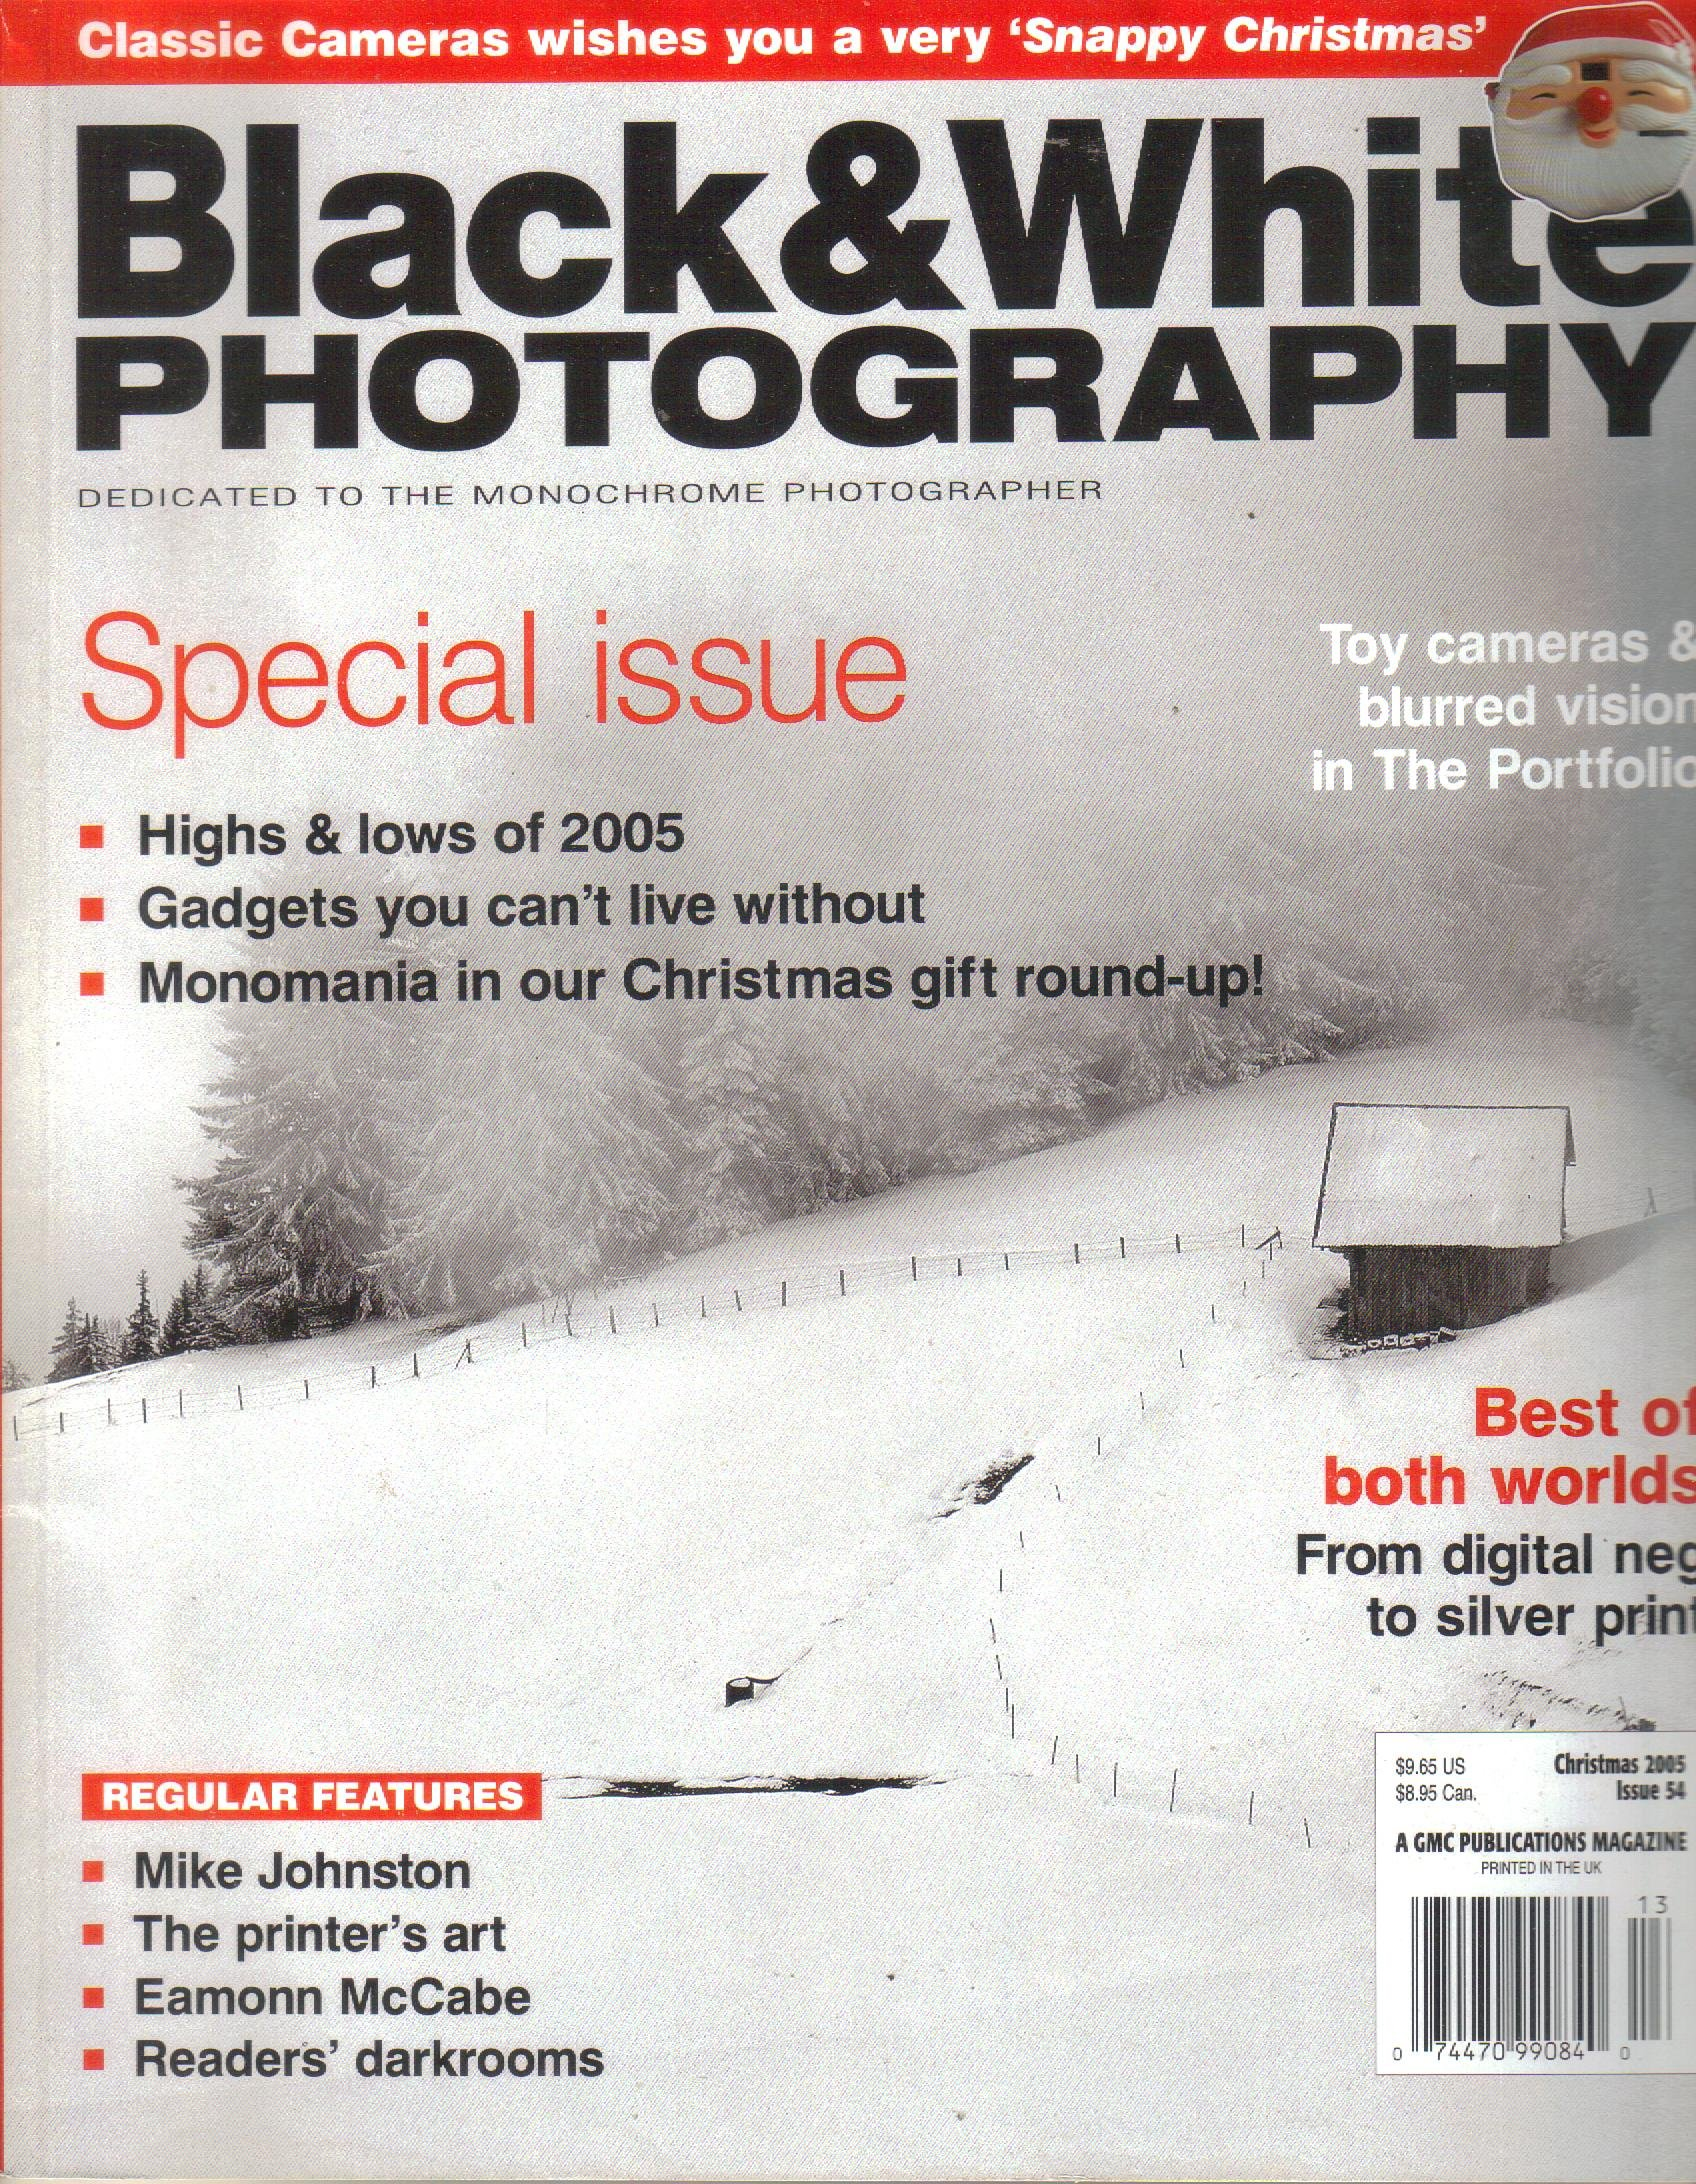 Black & White Photography Magazine, Issue 54, (Christmas/Winter, 2005)